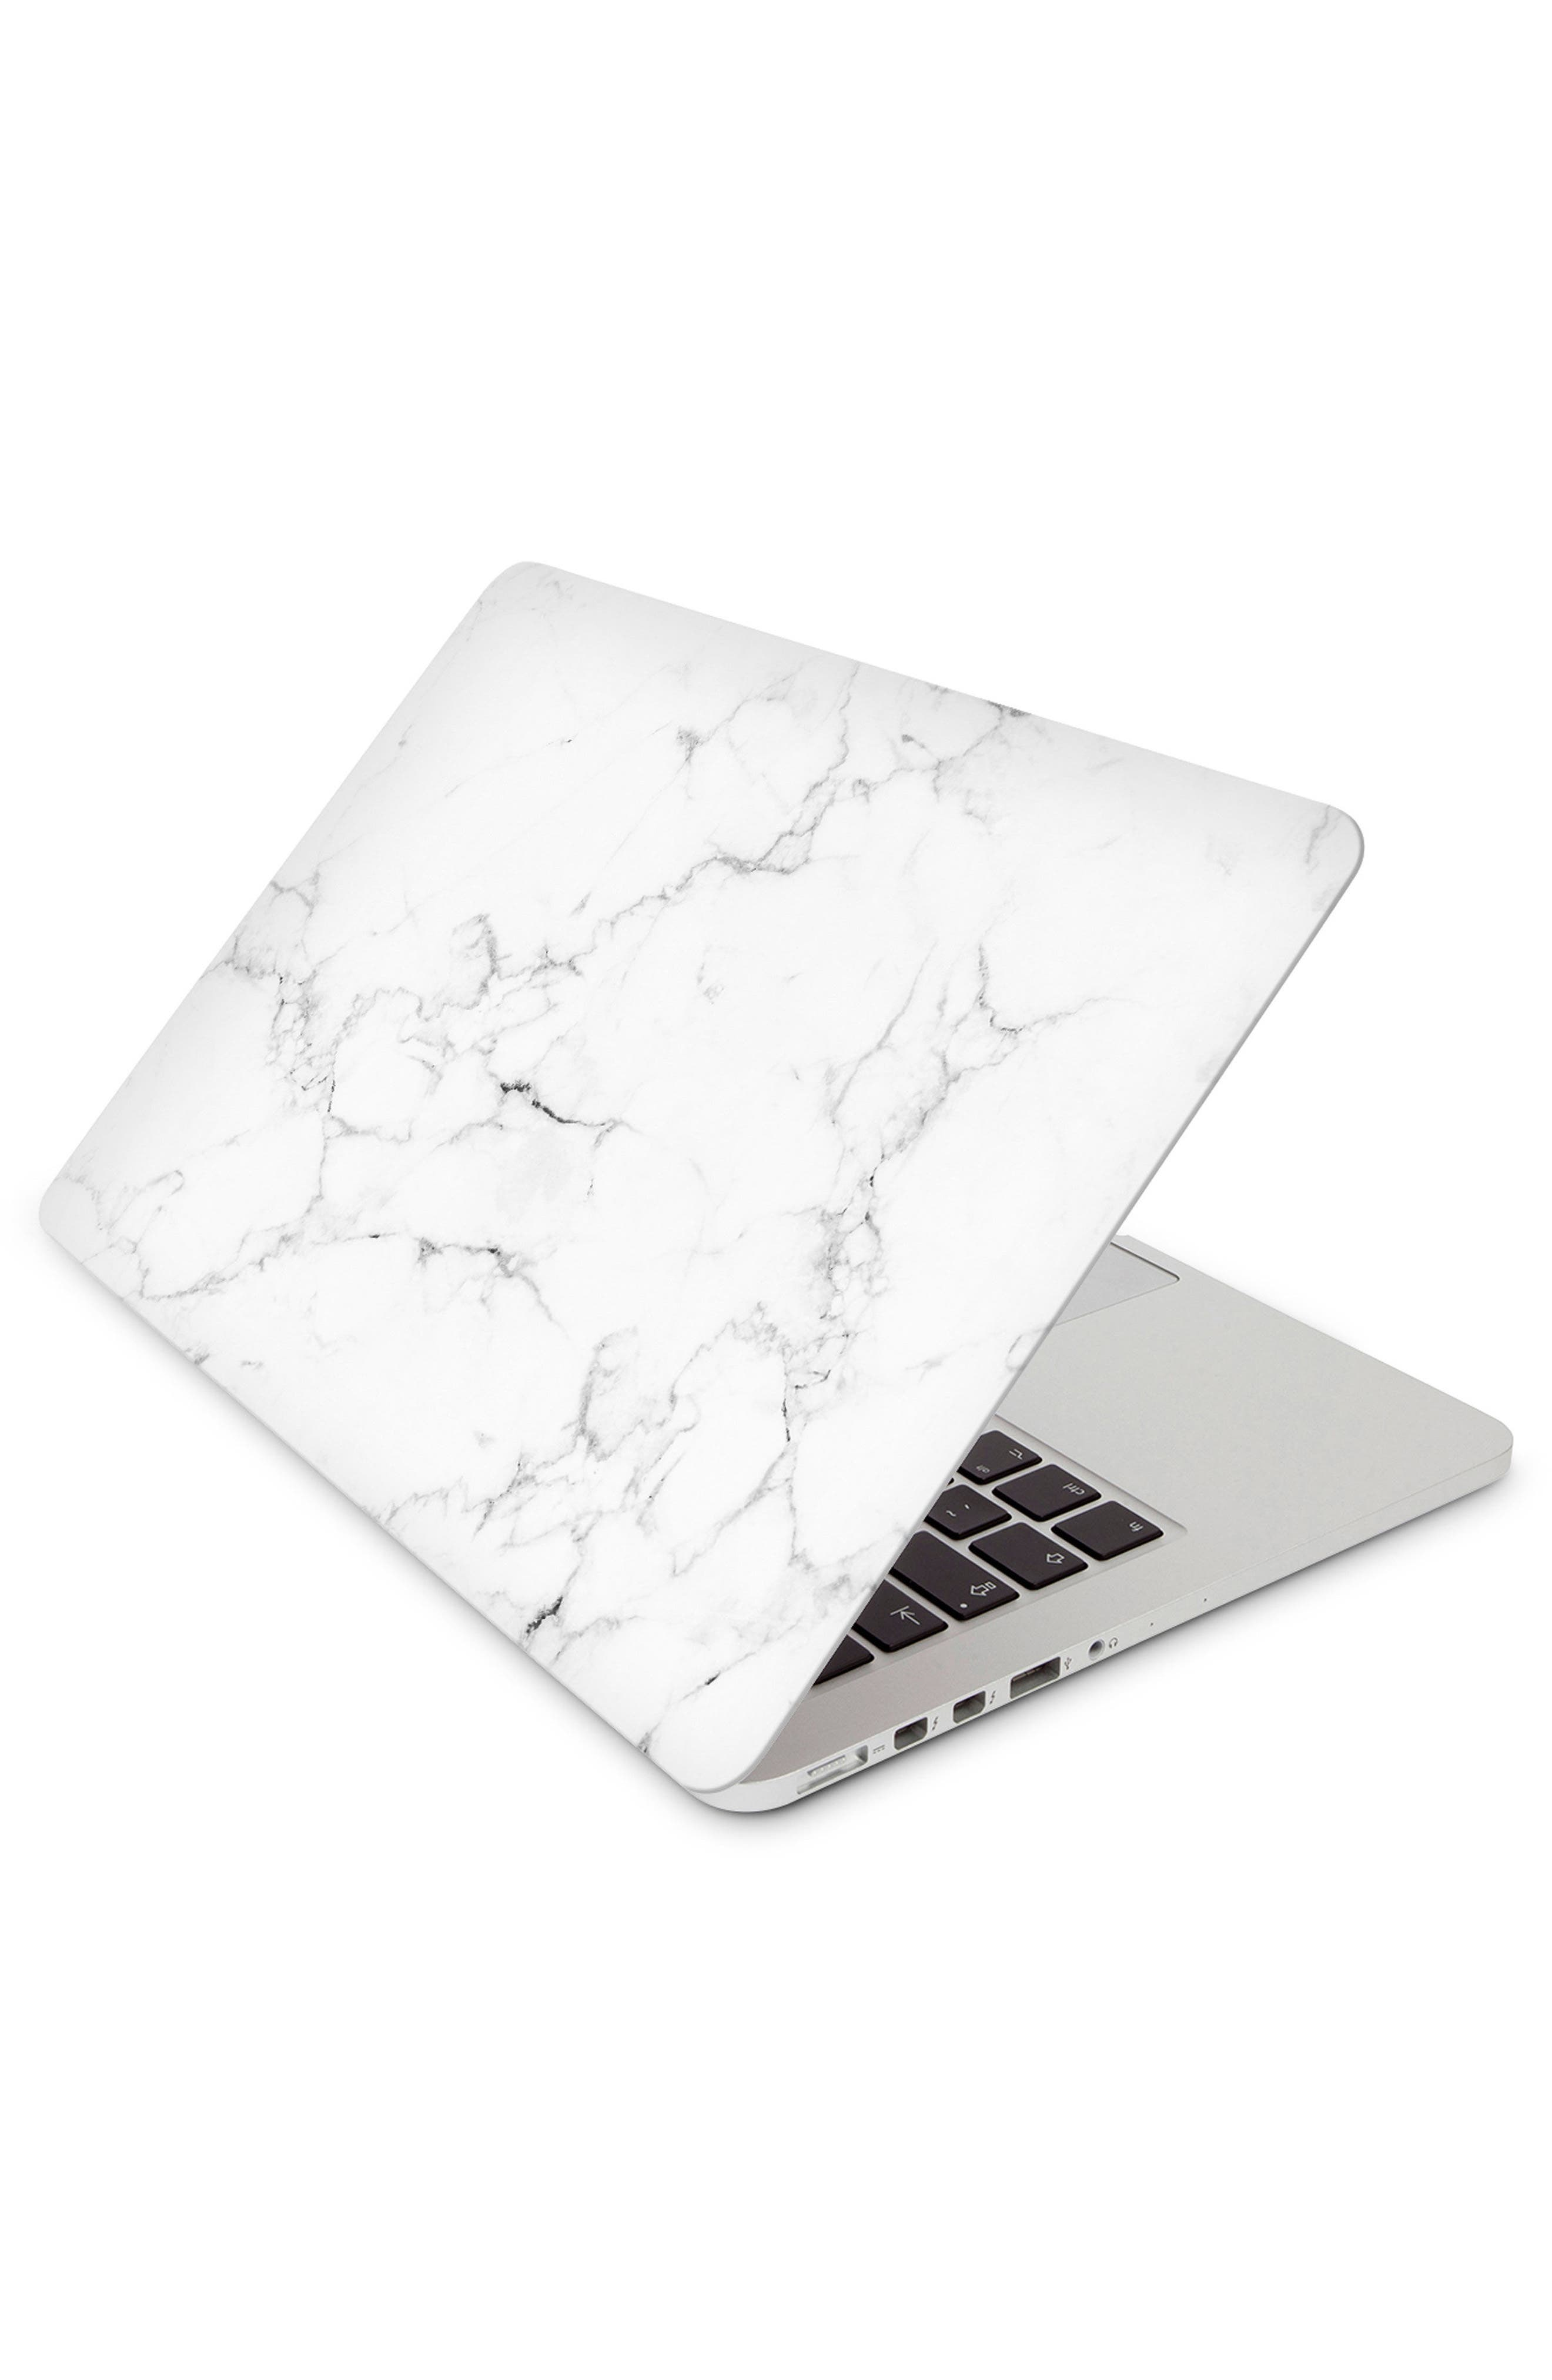 Main Image - Recover White Marble Laptop Skin